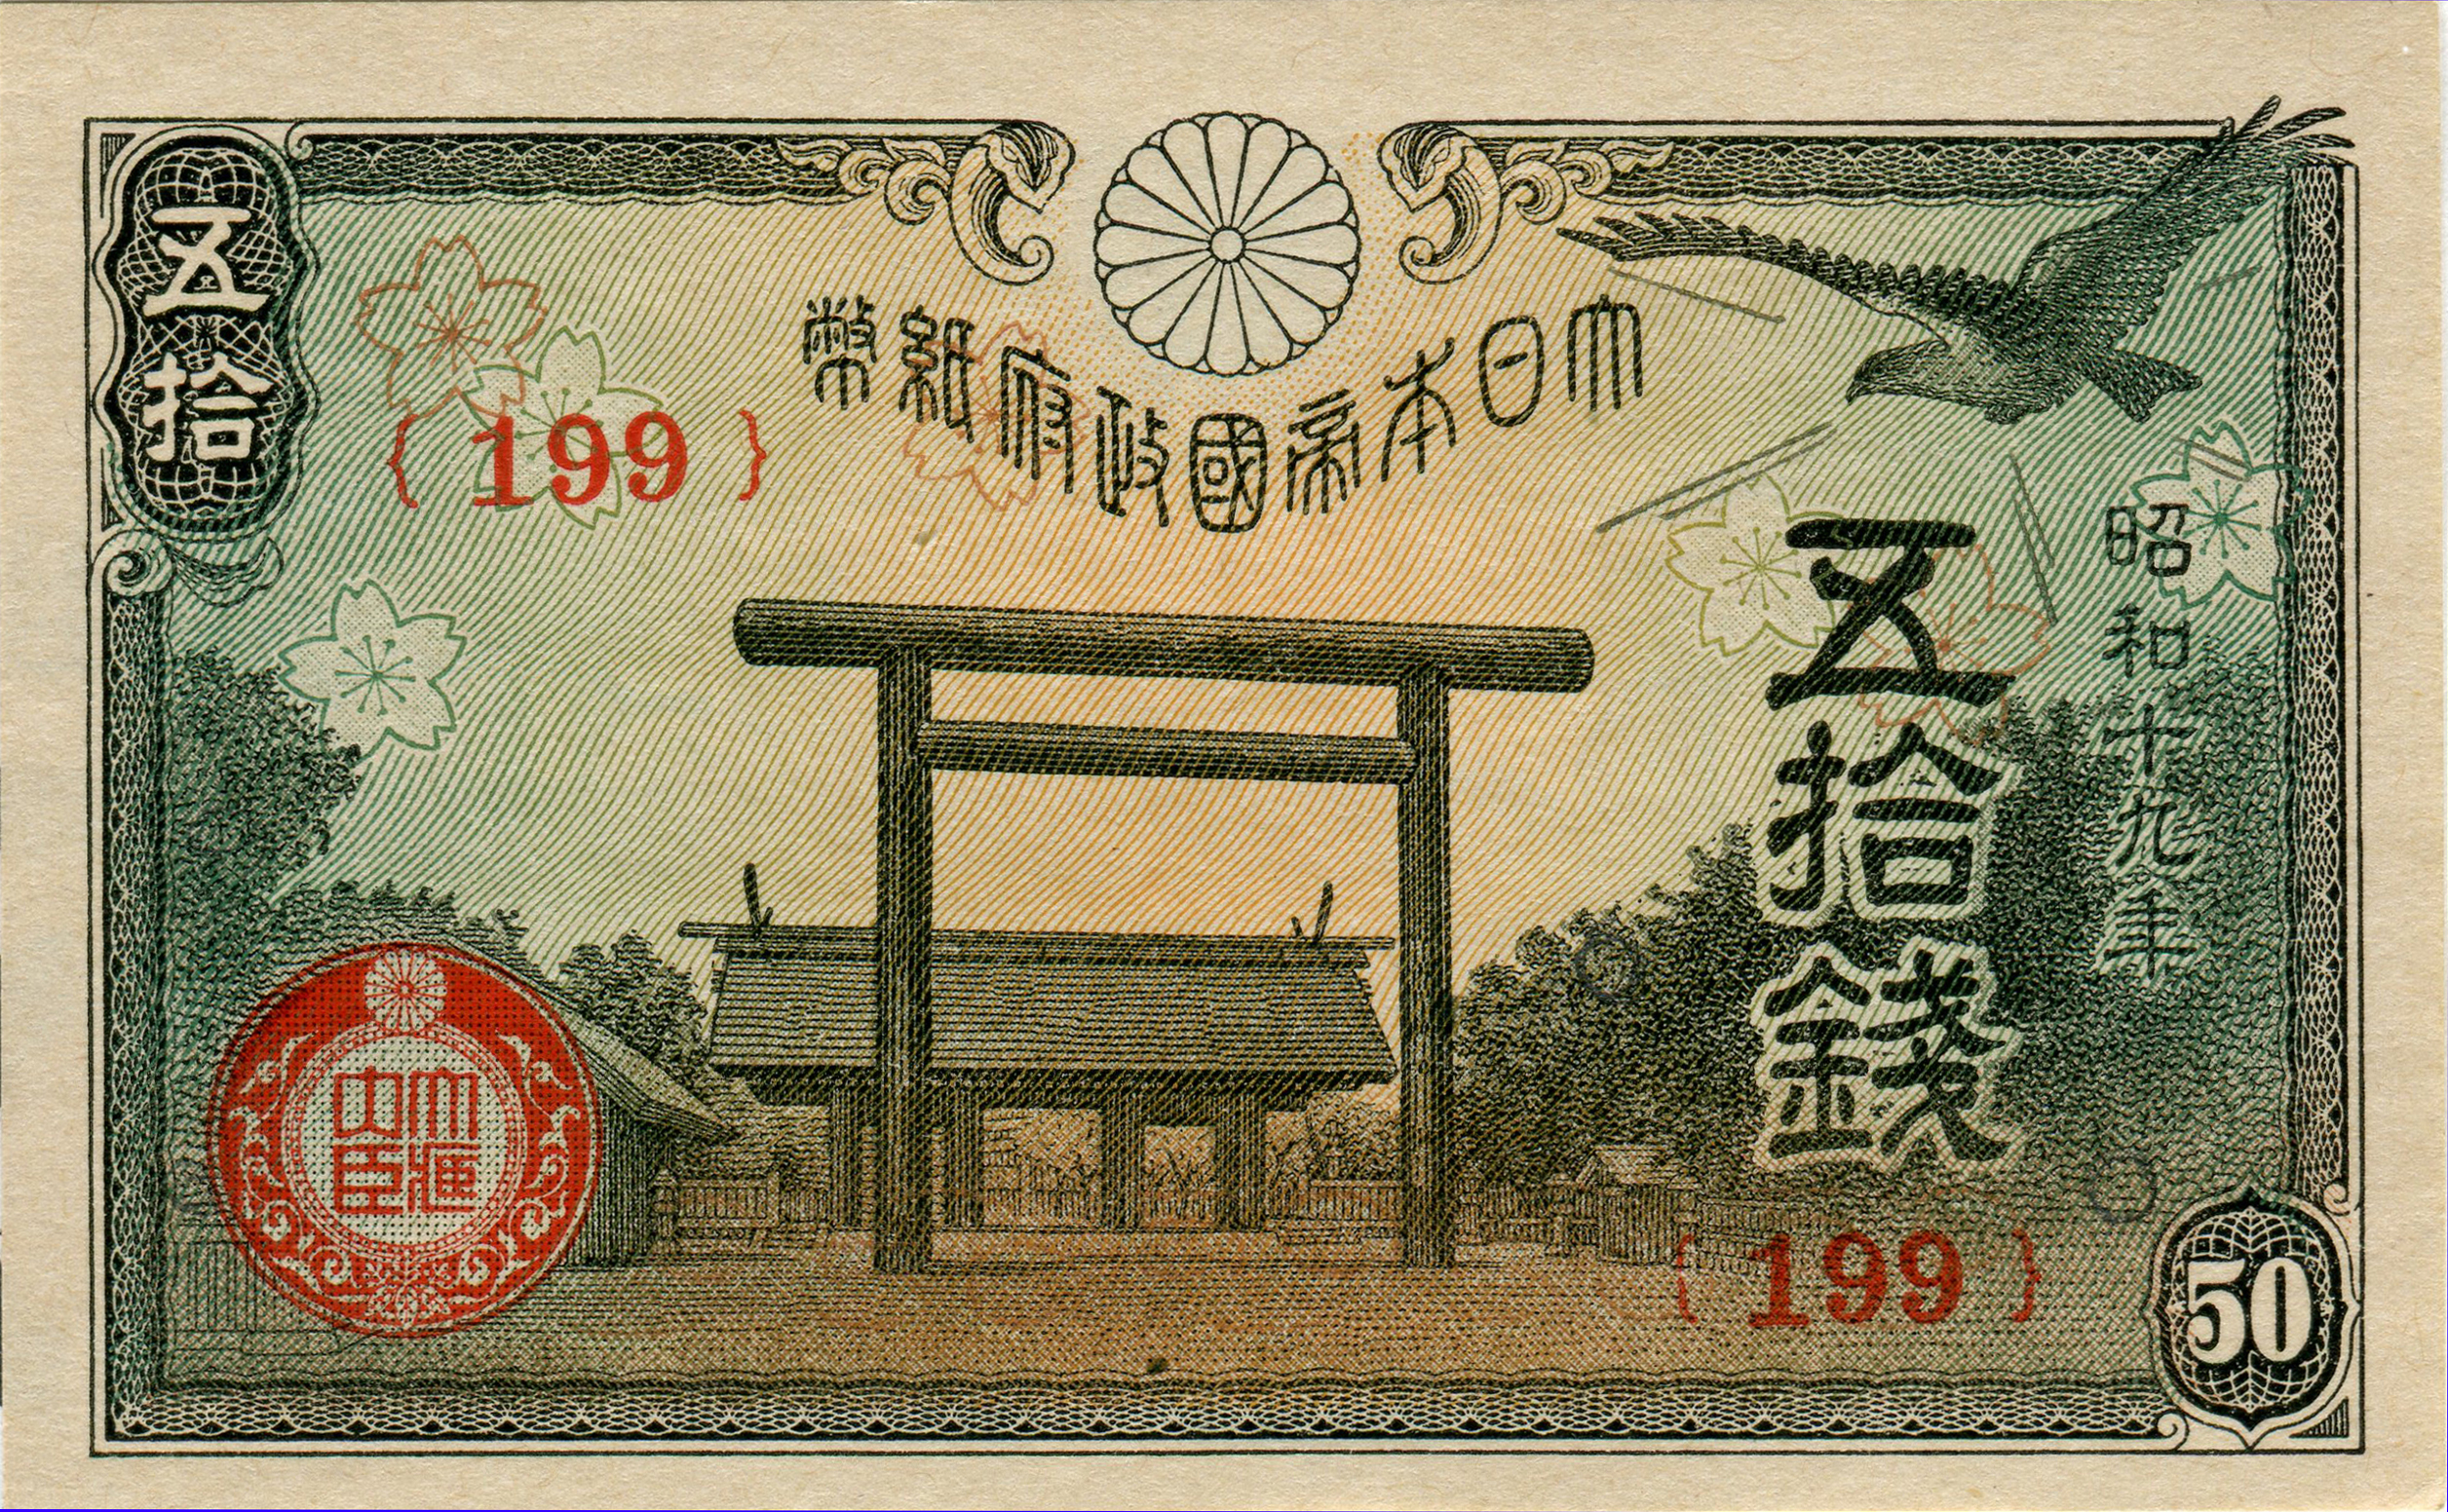 File:Japanese government small-face-value paper money 50 Sen